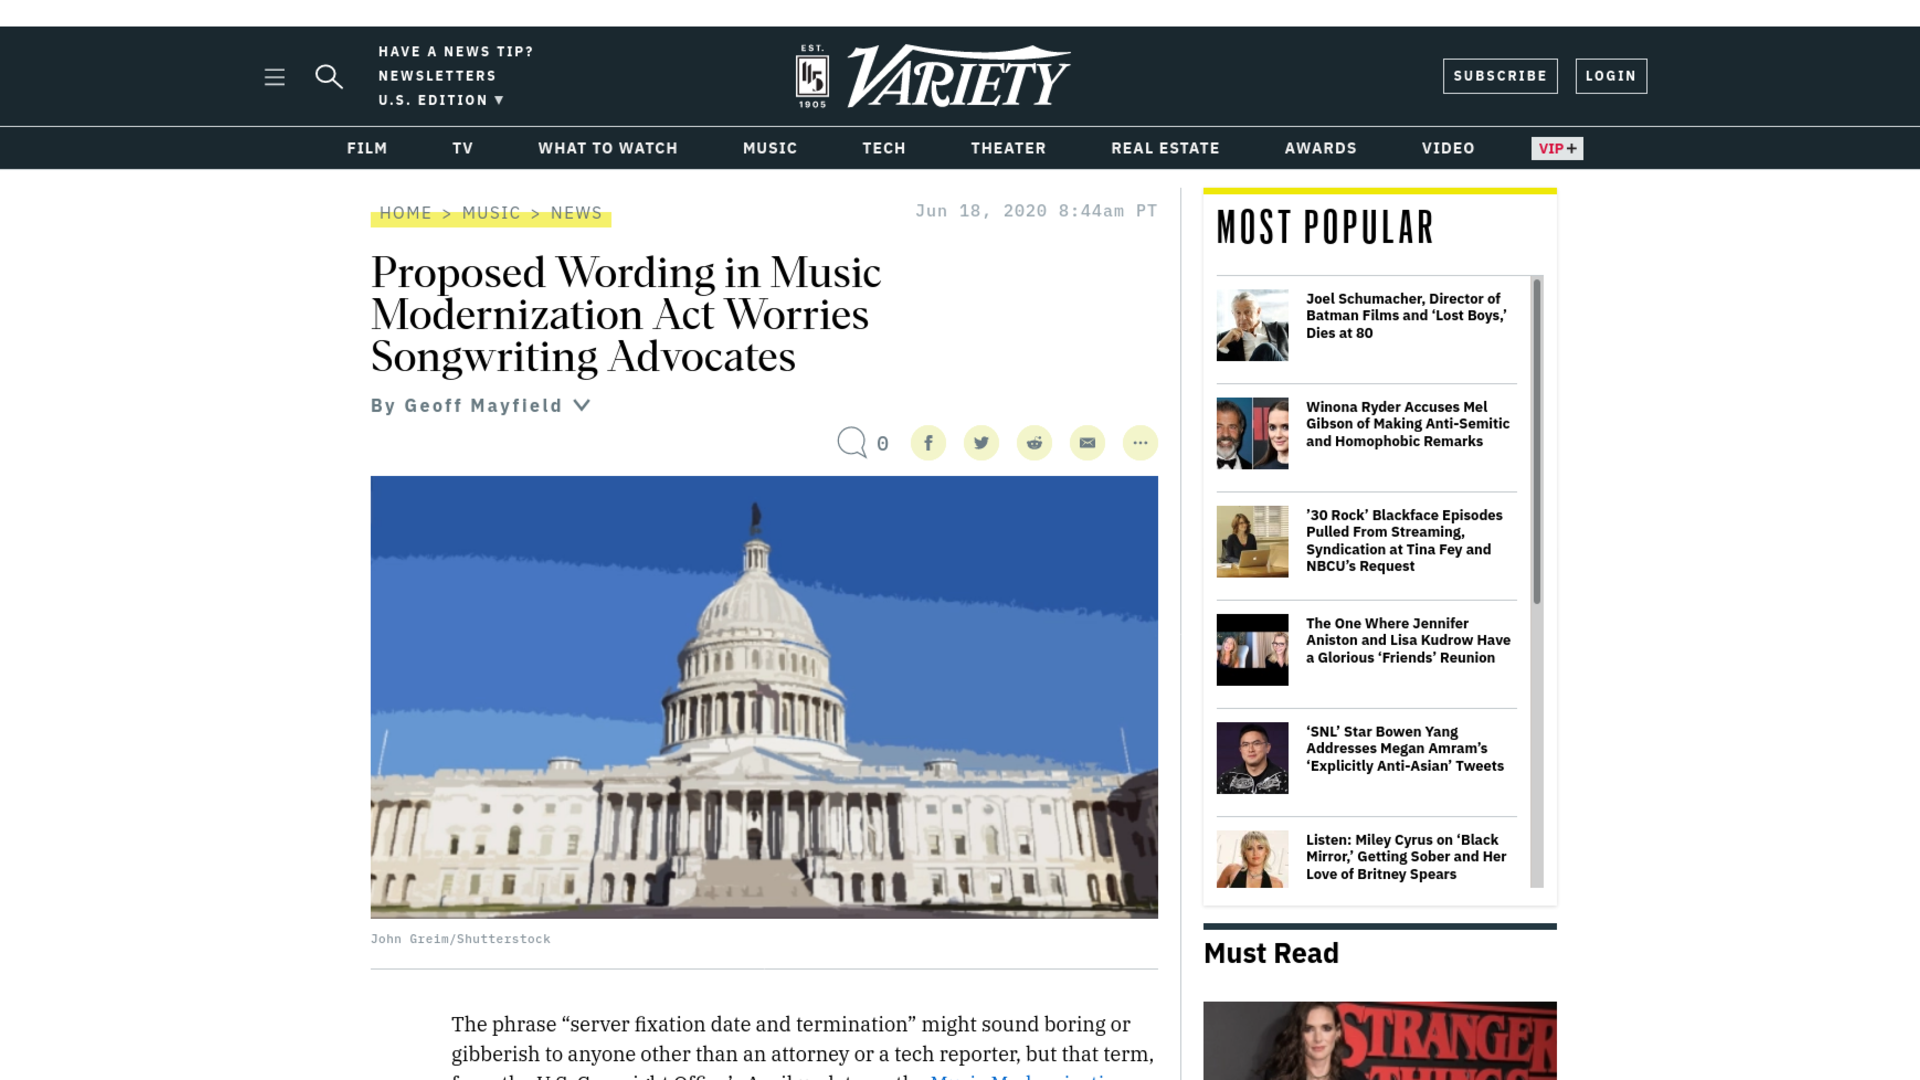 Fairness Rocks News Proposed Wording in Music Modernization Act Worries Songwriting Advocates